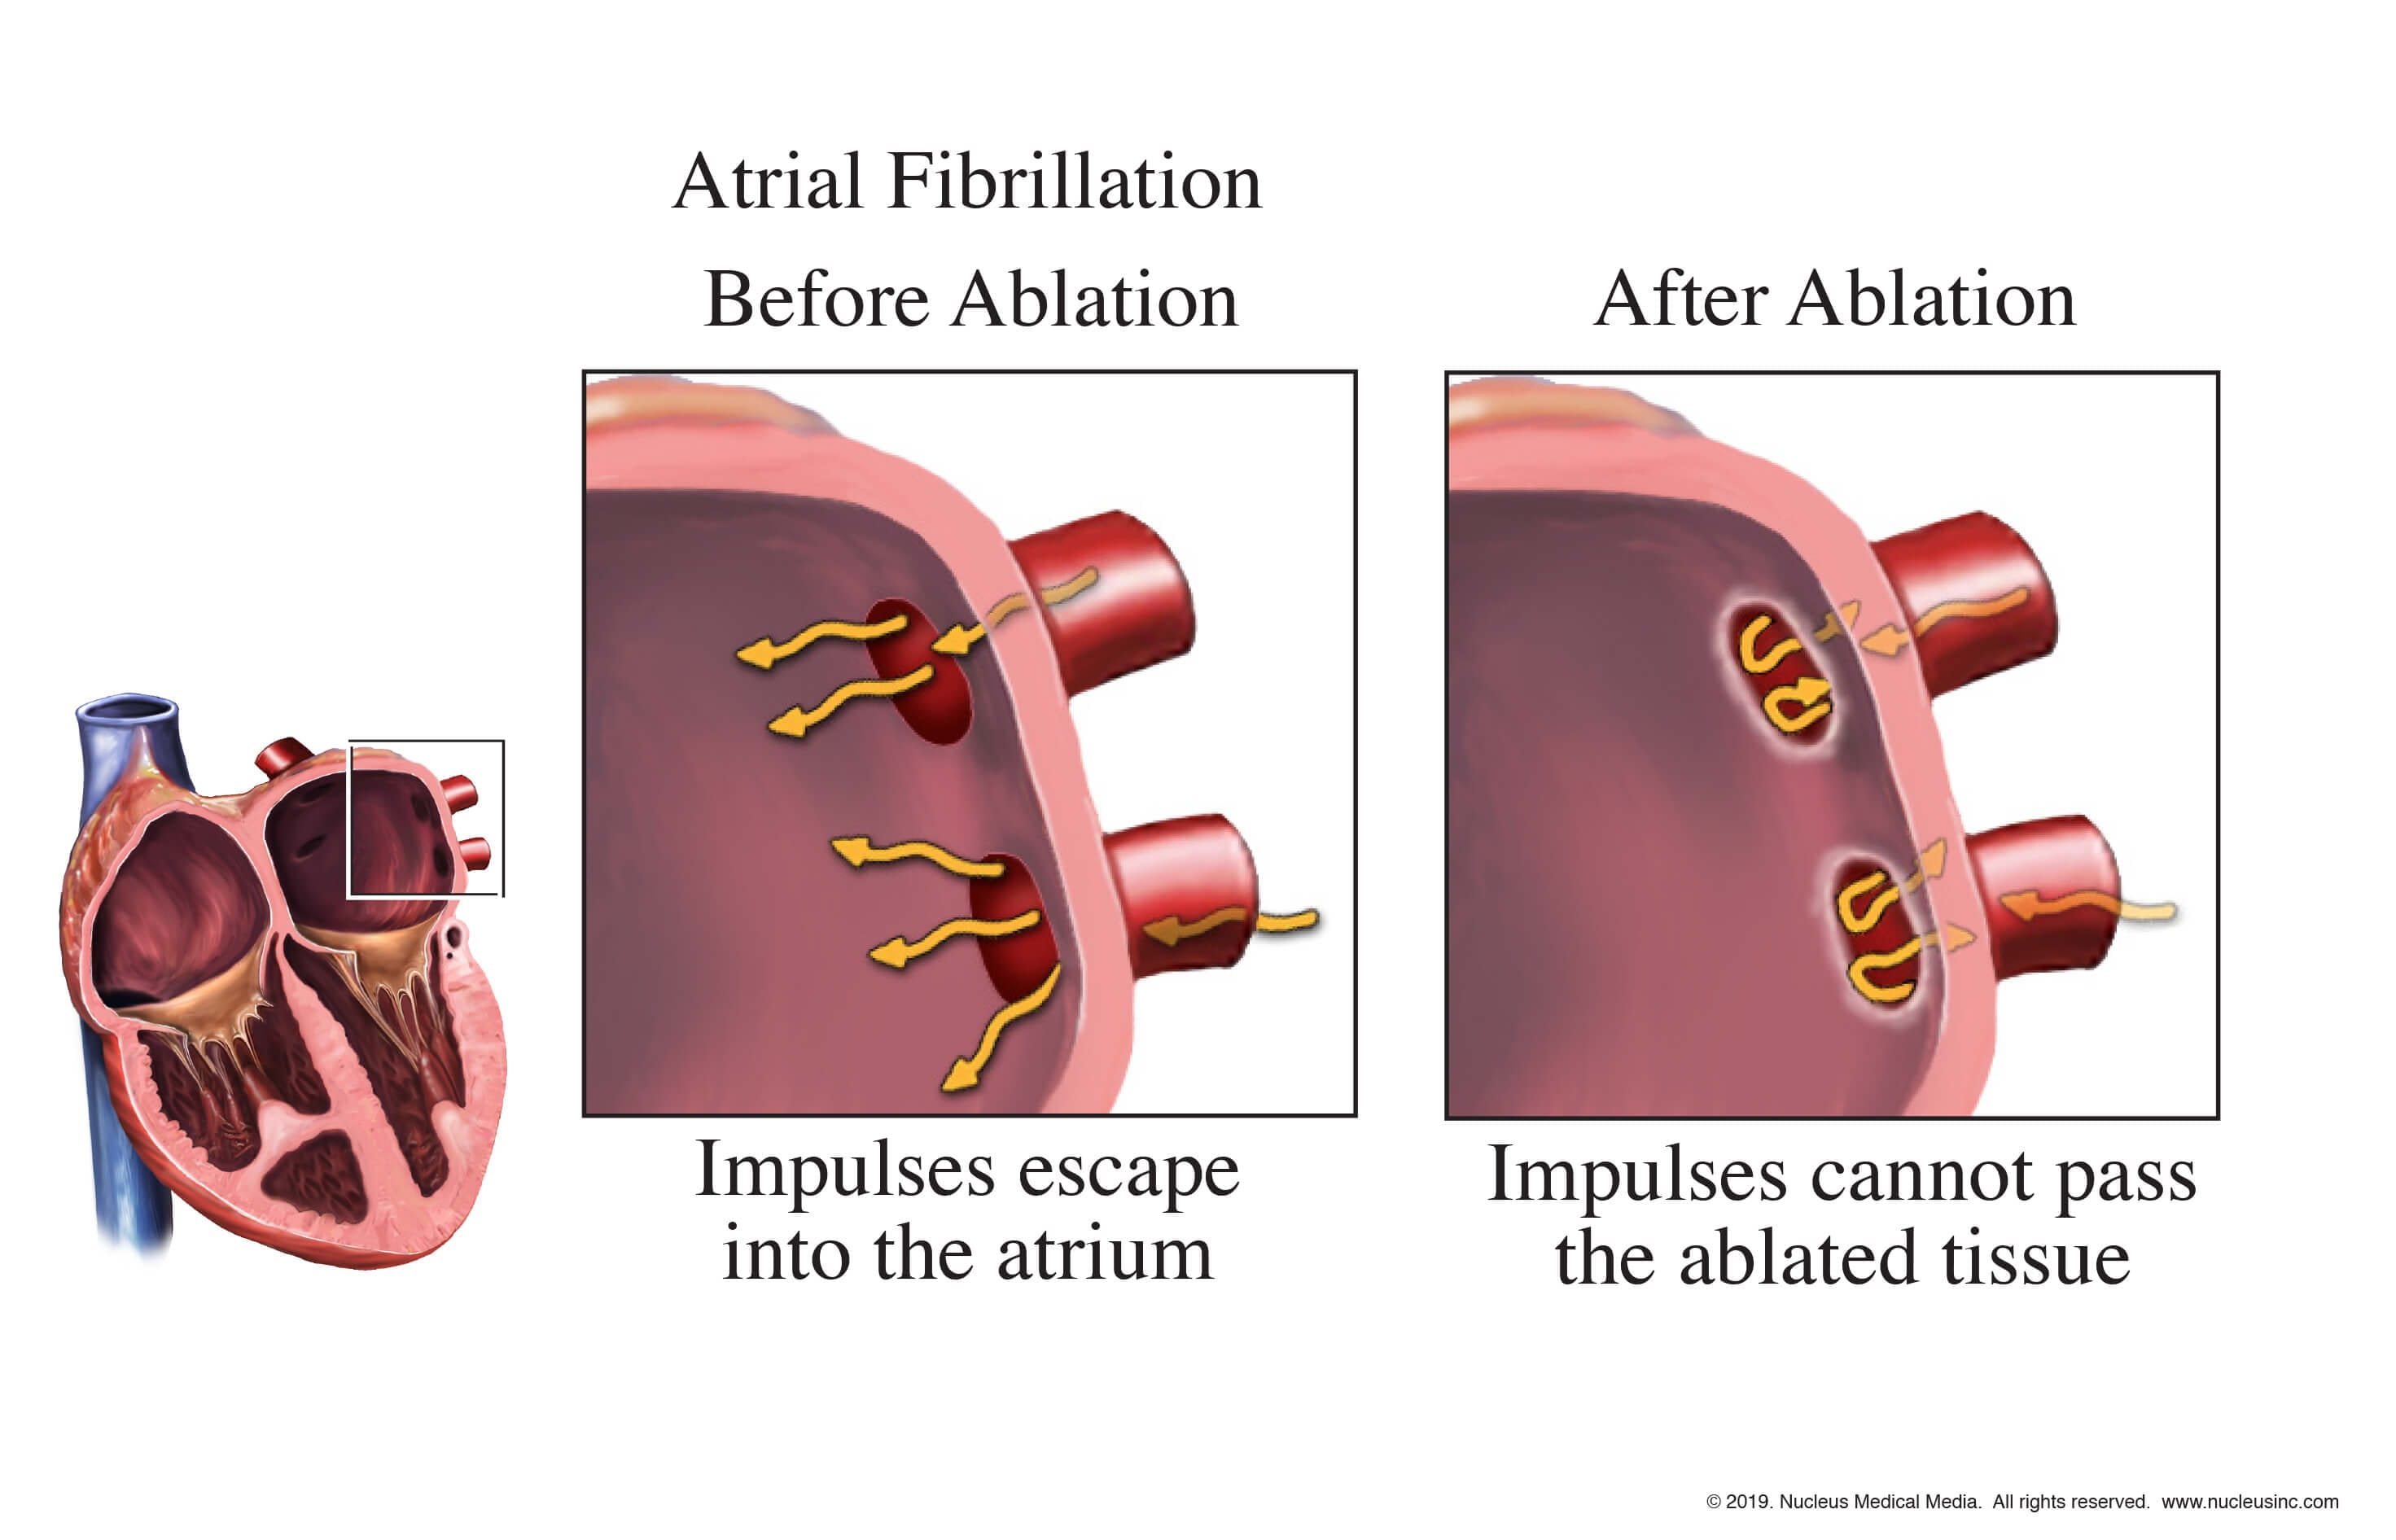 Atrial fibrillation corrected after ablation - EP Study - Catheter Ablation - Arrhythmias - Dr. Alireza Nazeri